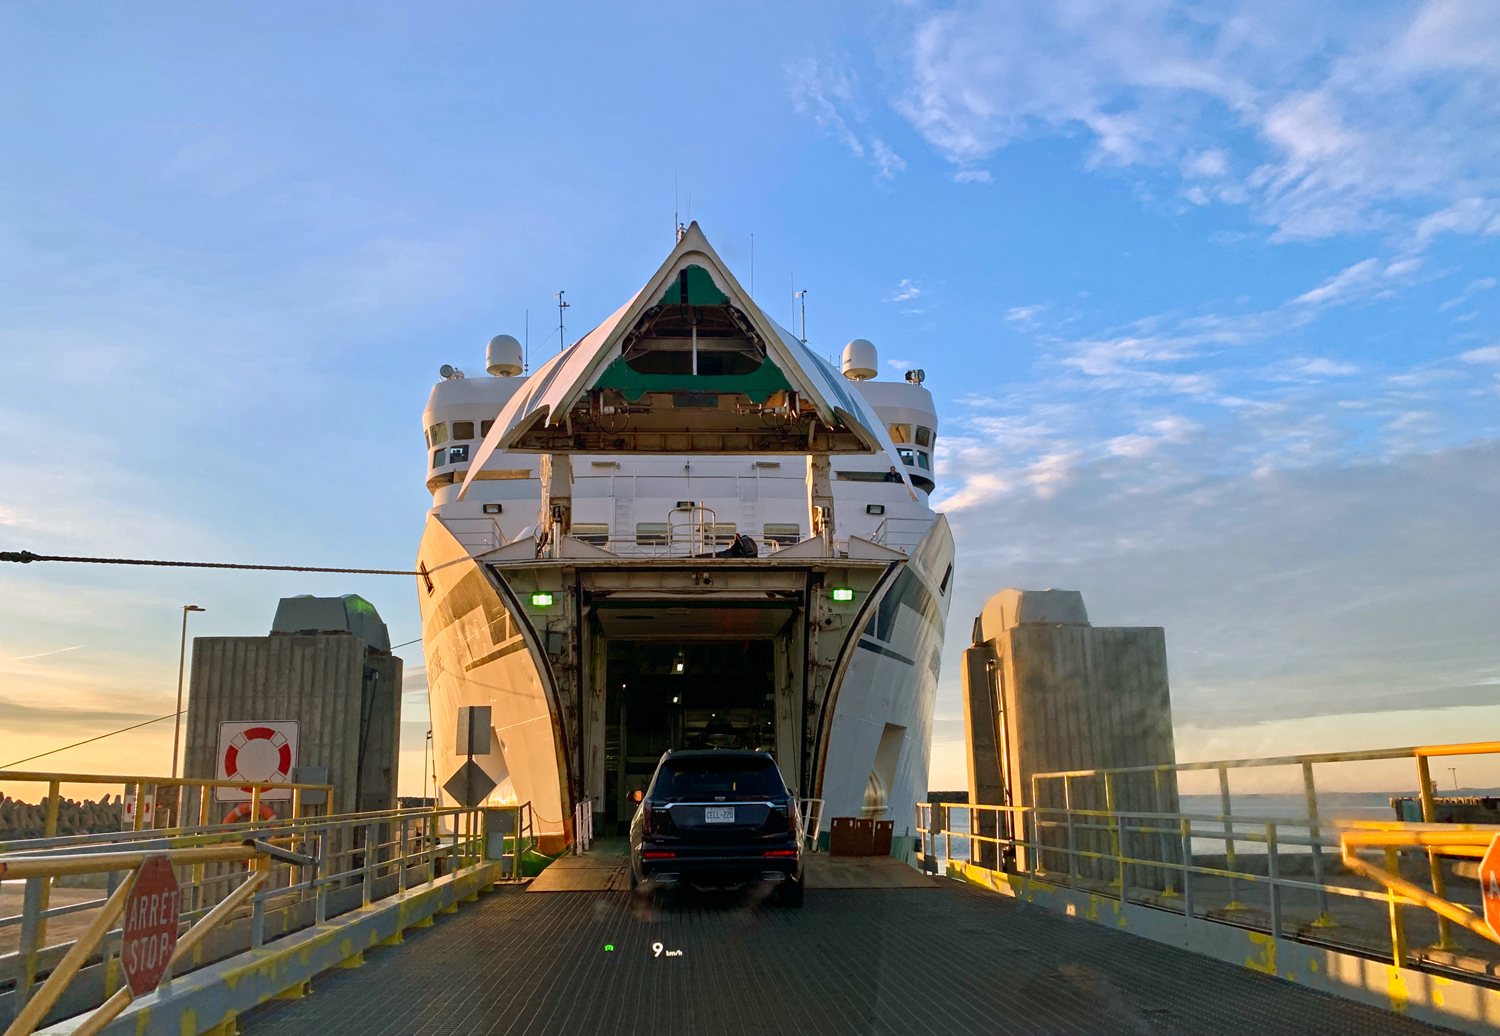 Loading on the ferry